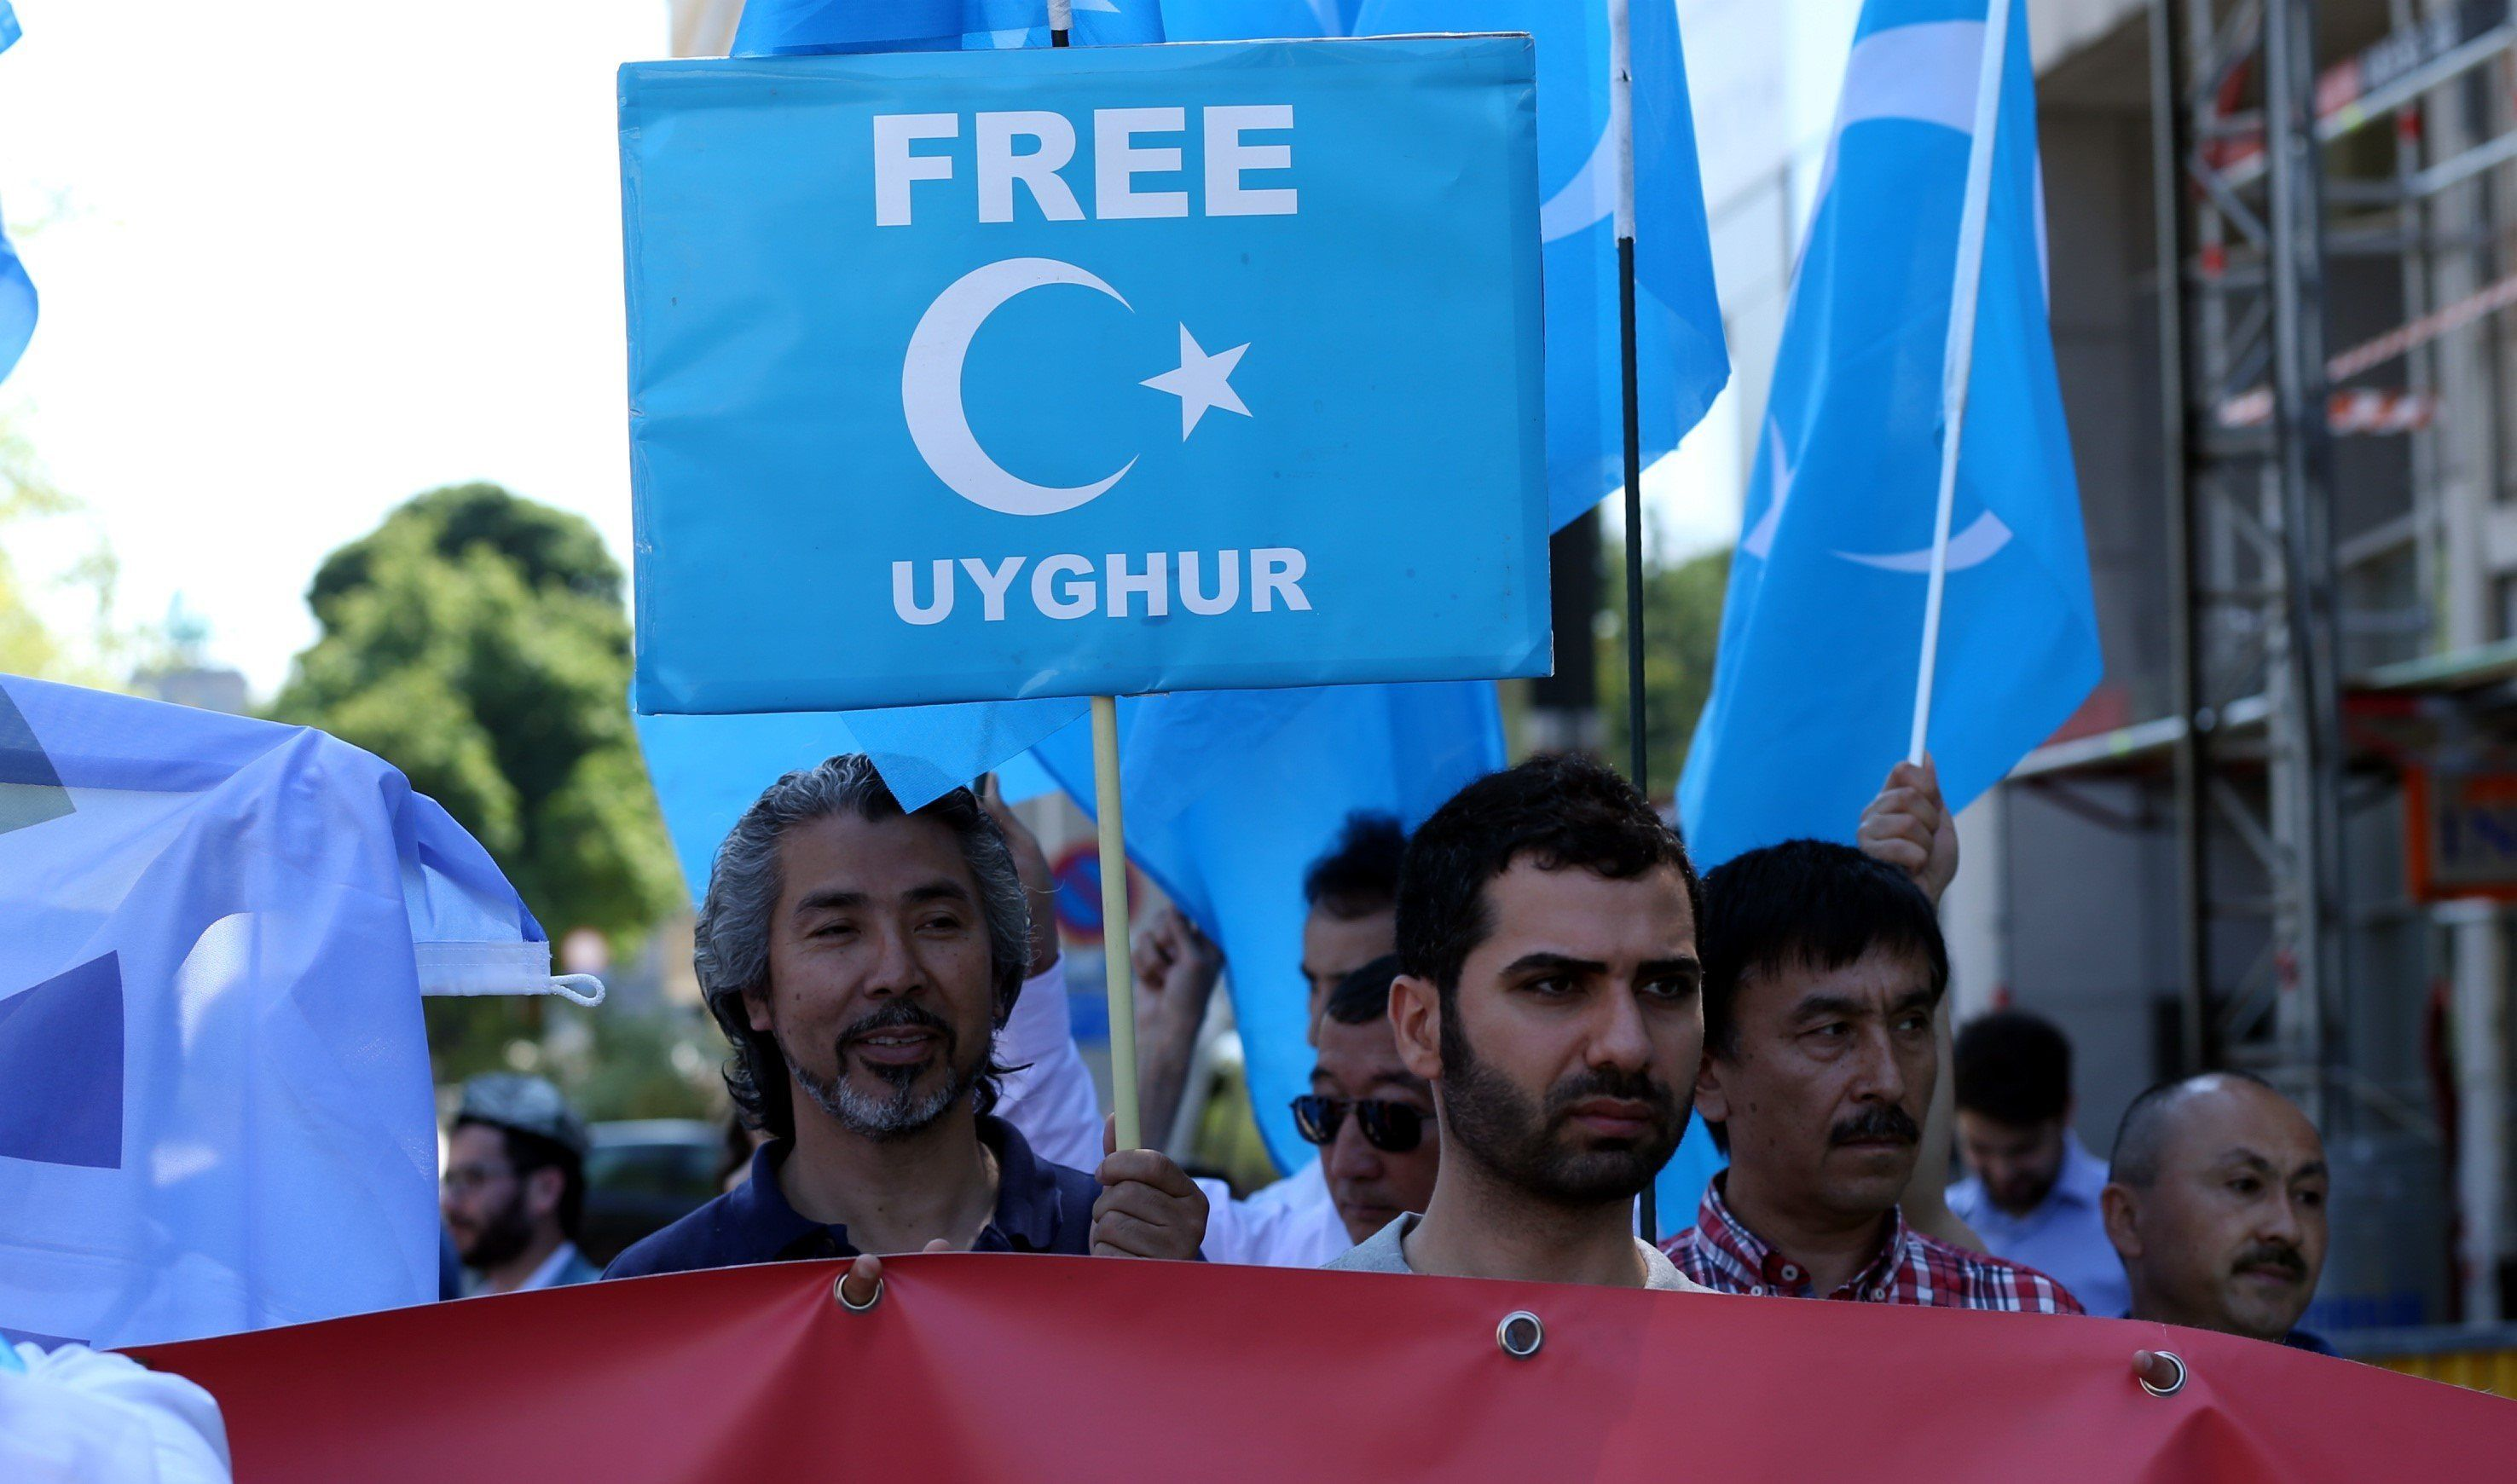 BRUSSELS, BELGIUM - JUNE 02 : Tibetan and Uyghur Turks hold banners and placards during a protest against Chinese Premier Li Keqiang after he attended EU-China Summit, in front of the EU Council Building in Brussels, Belgium on June 02, 2017. (Photo by Dursun Aydemir/Anadolu Agency/Getty Images)